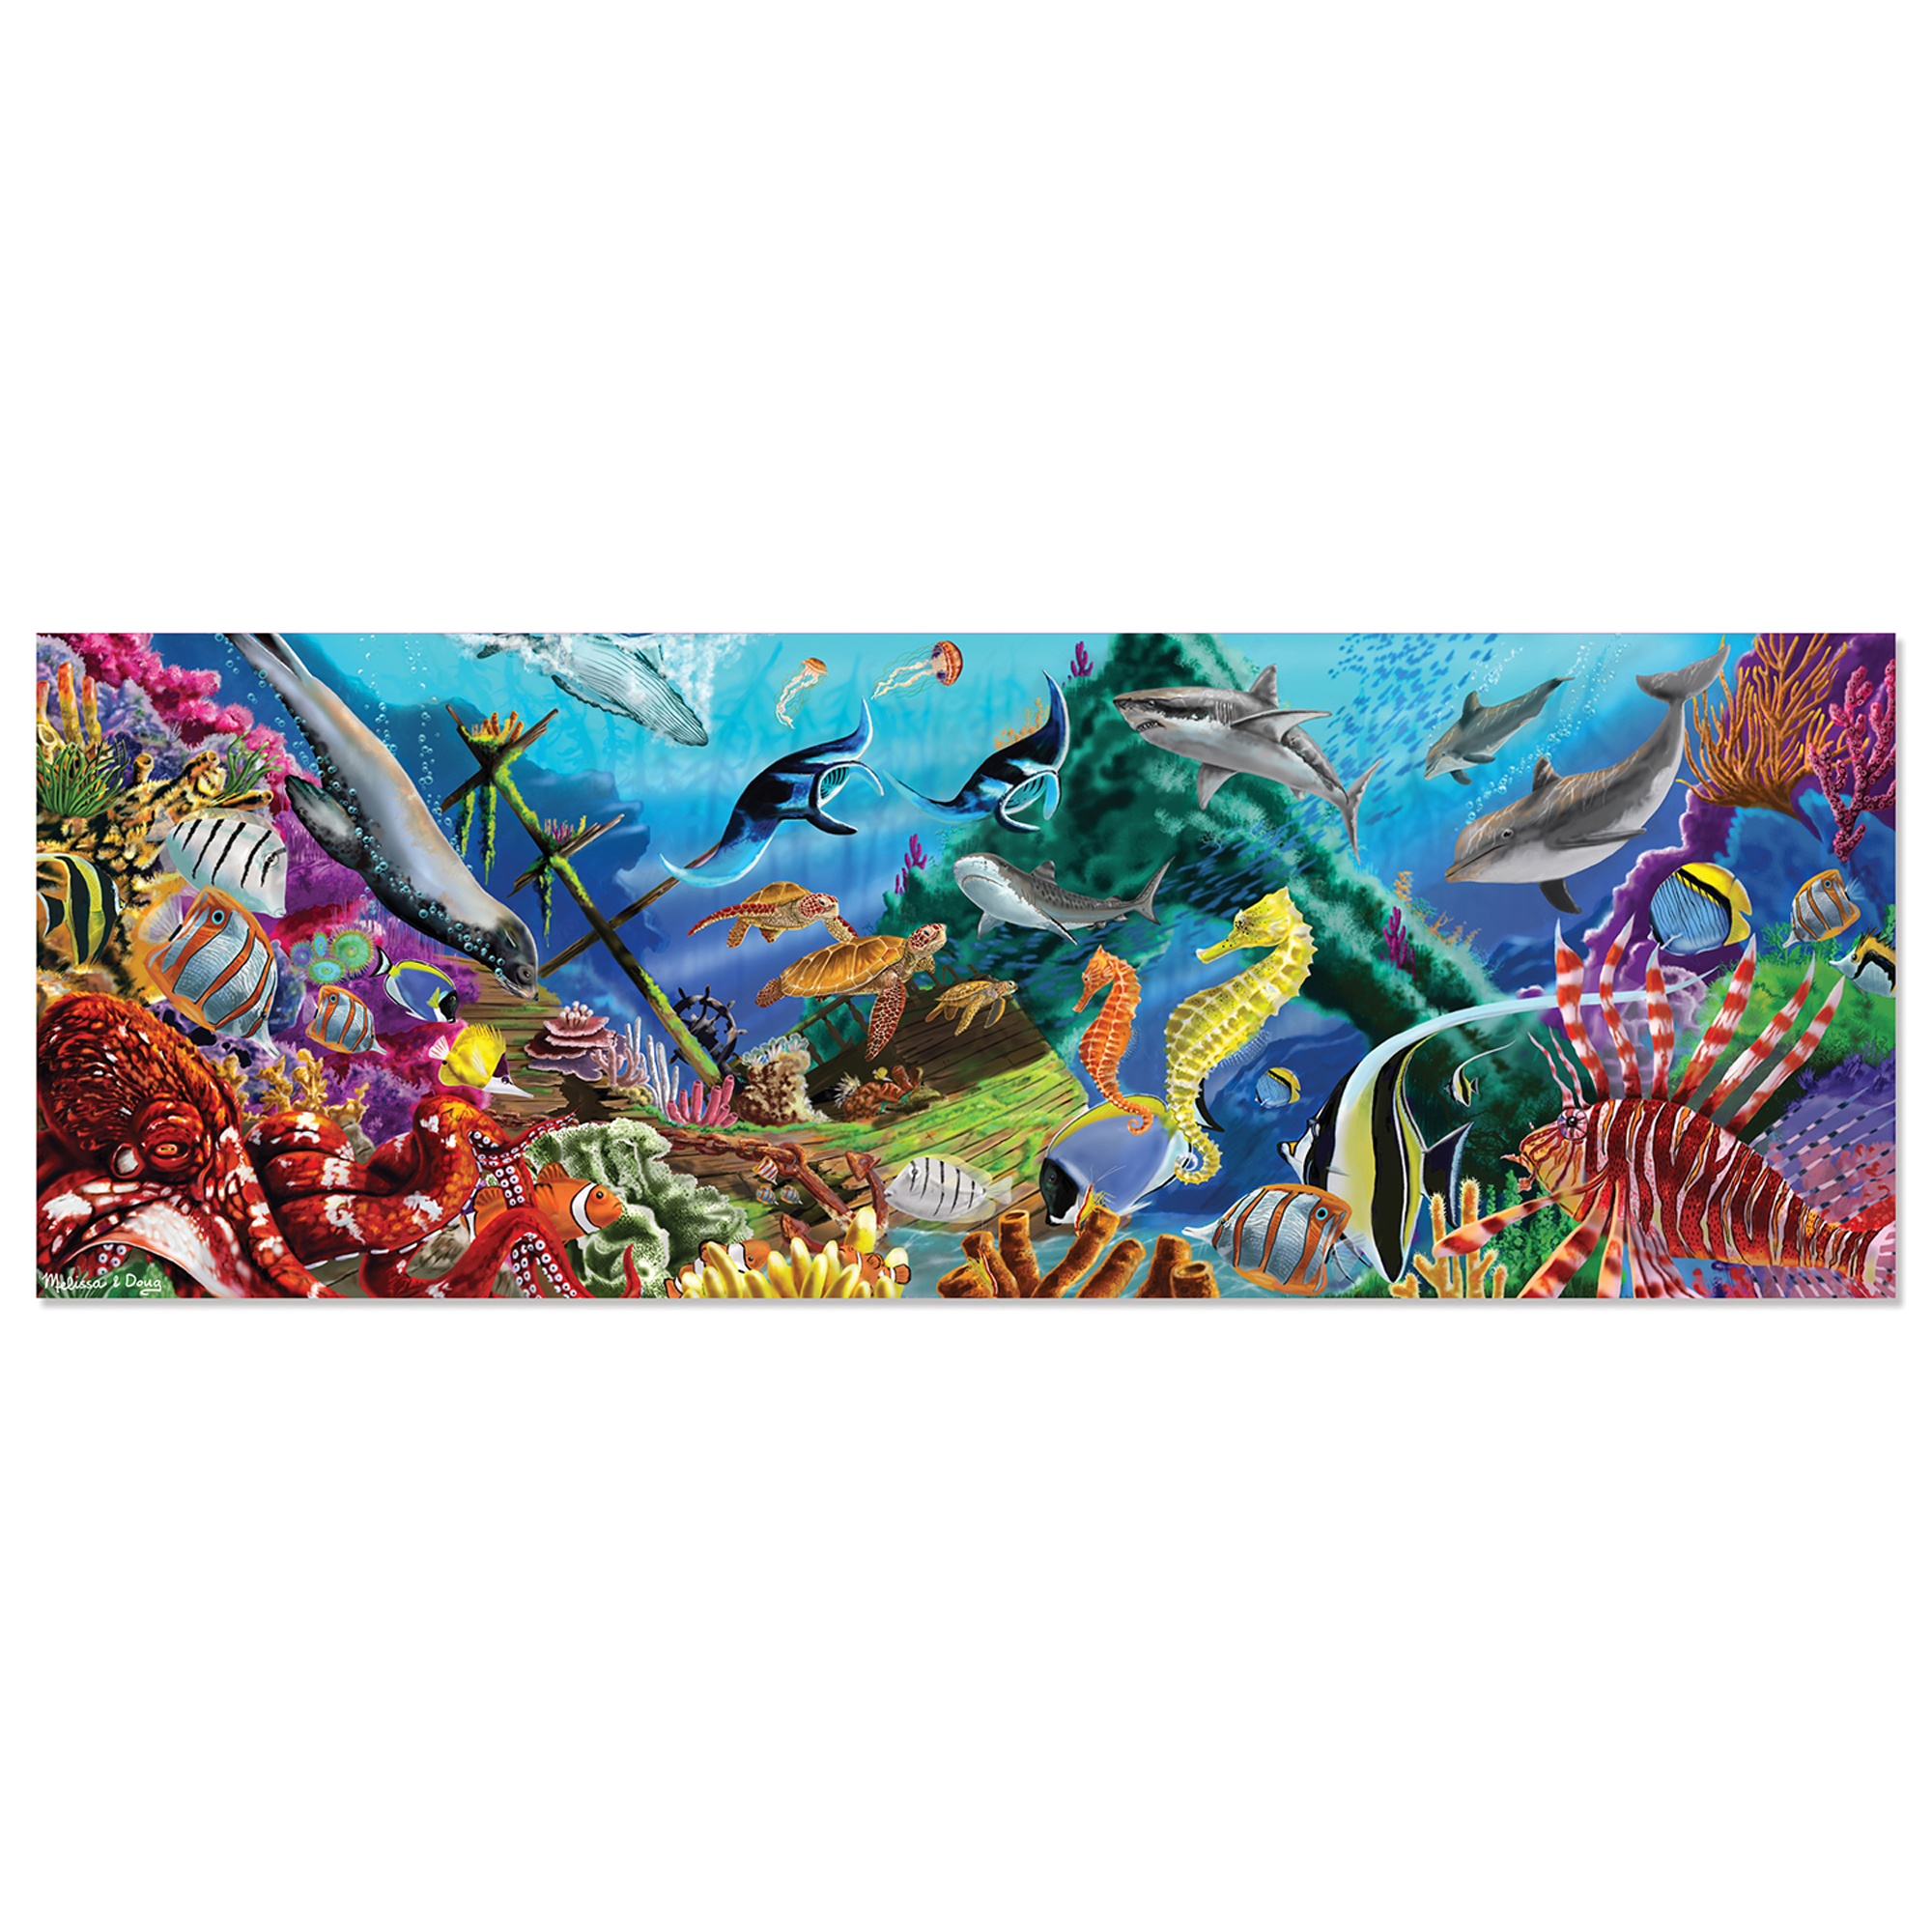 """Explore the ocean depths with this 200-piece cardboard jig-saw puzzle. Complete the more than four-foot-long rectangular puzzle and use the included picture key to identify the 24 different kinds of sea creatures featured in the brightly-colored ocean oasis. The """"Easy Clean"""" surface keeps the puzzle looking like new. 50"""" x 18"""" assembled"""